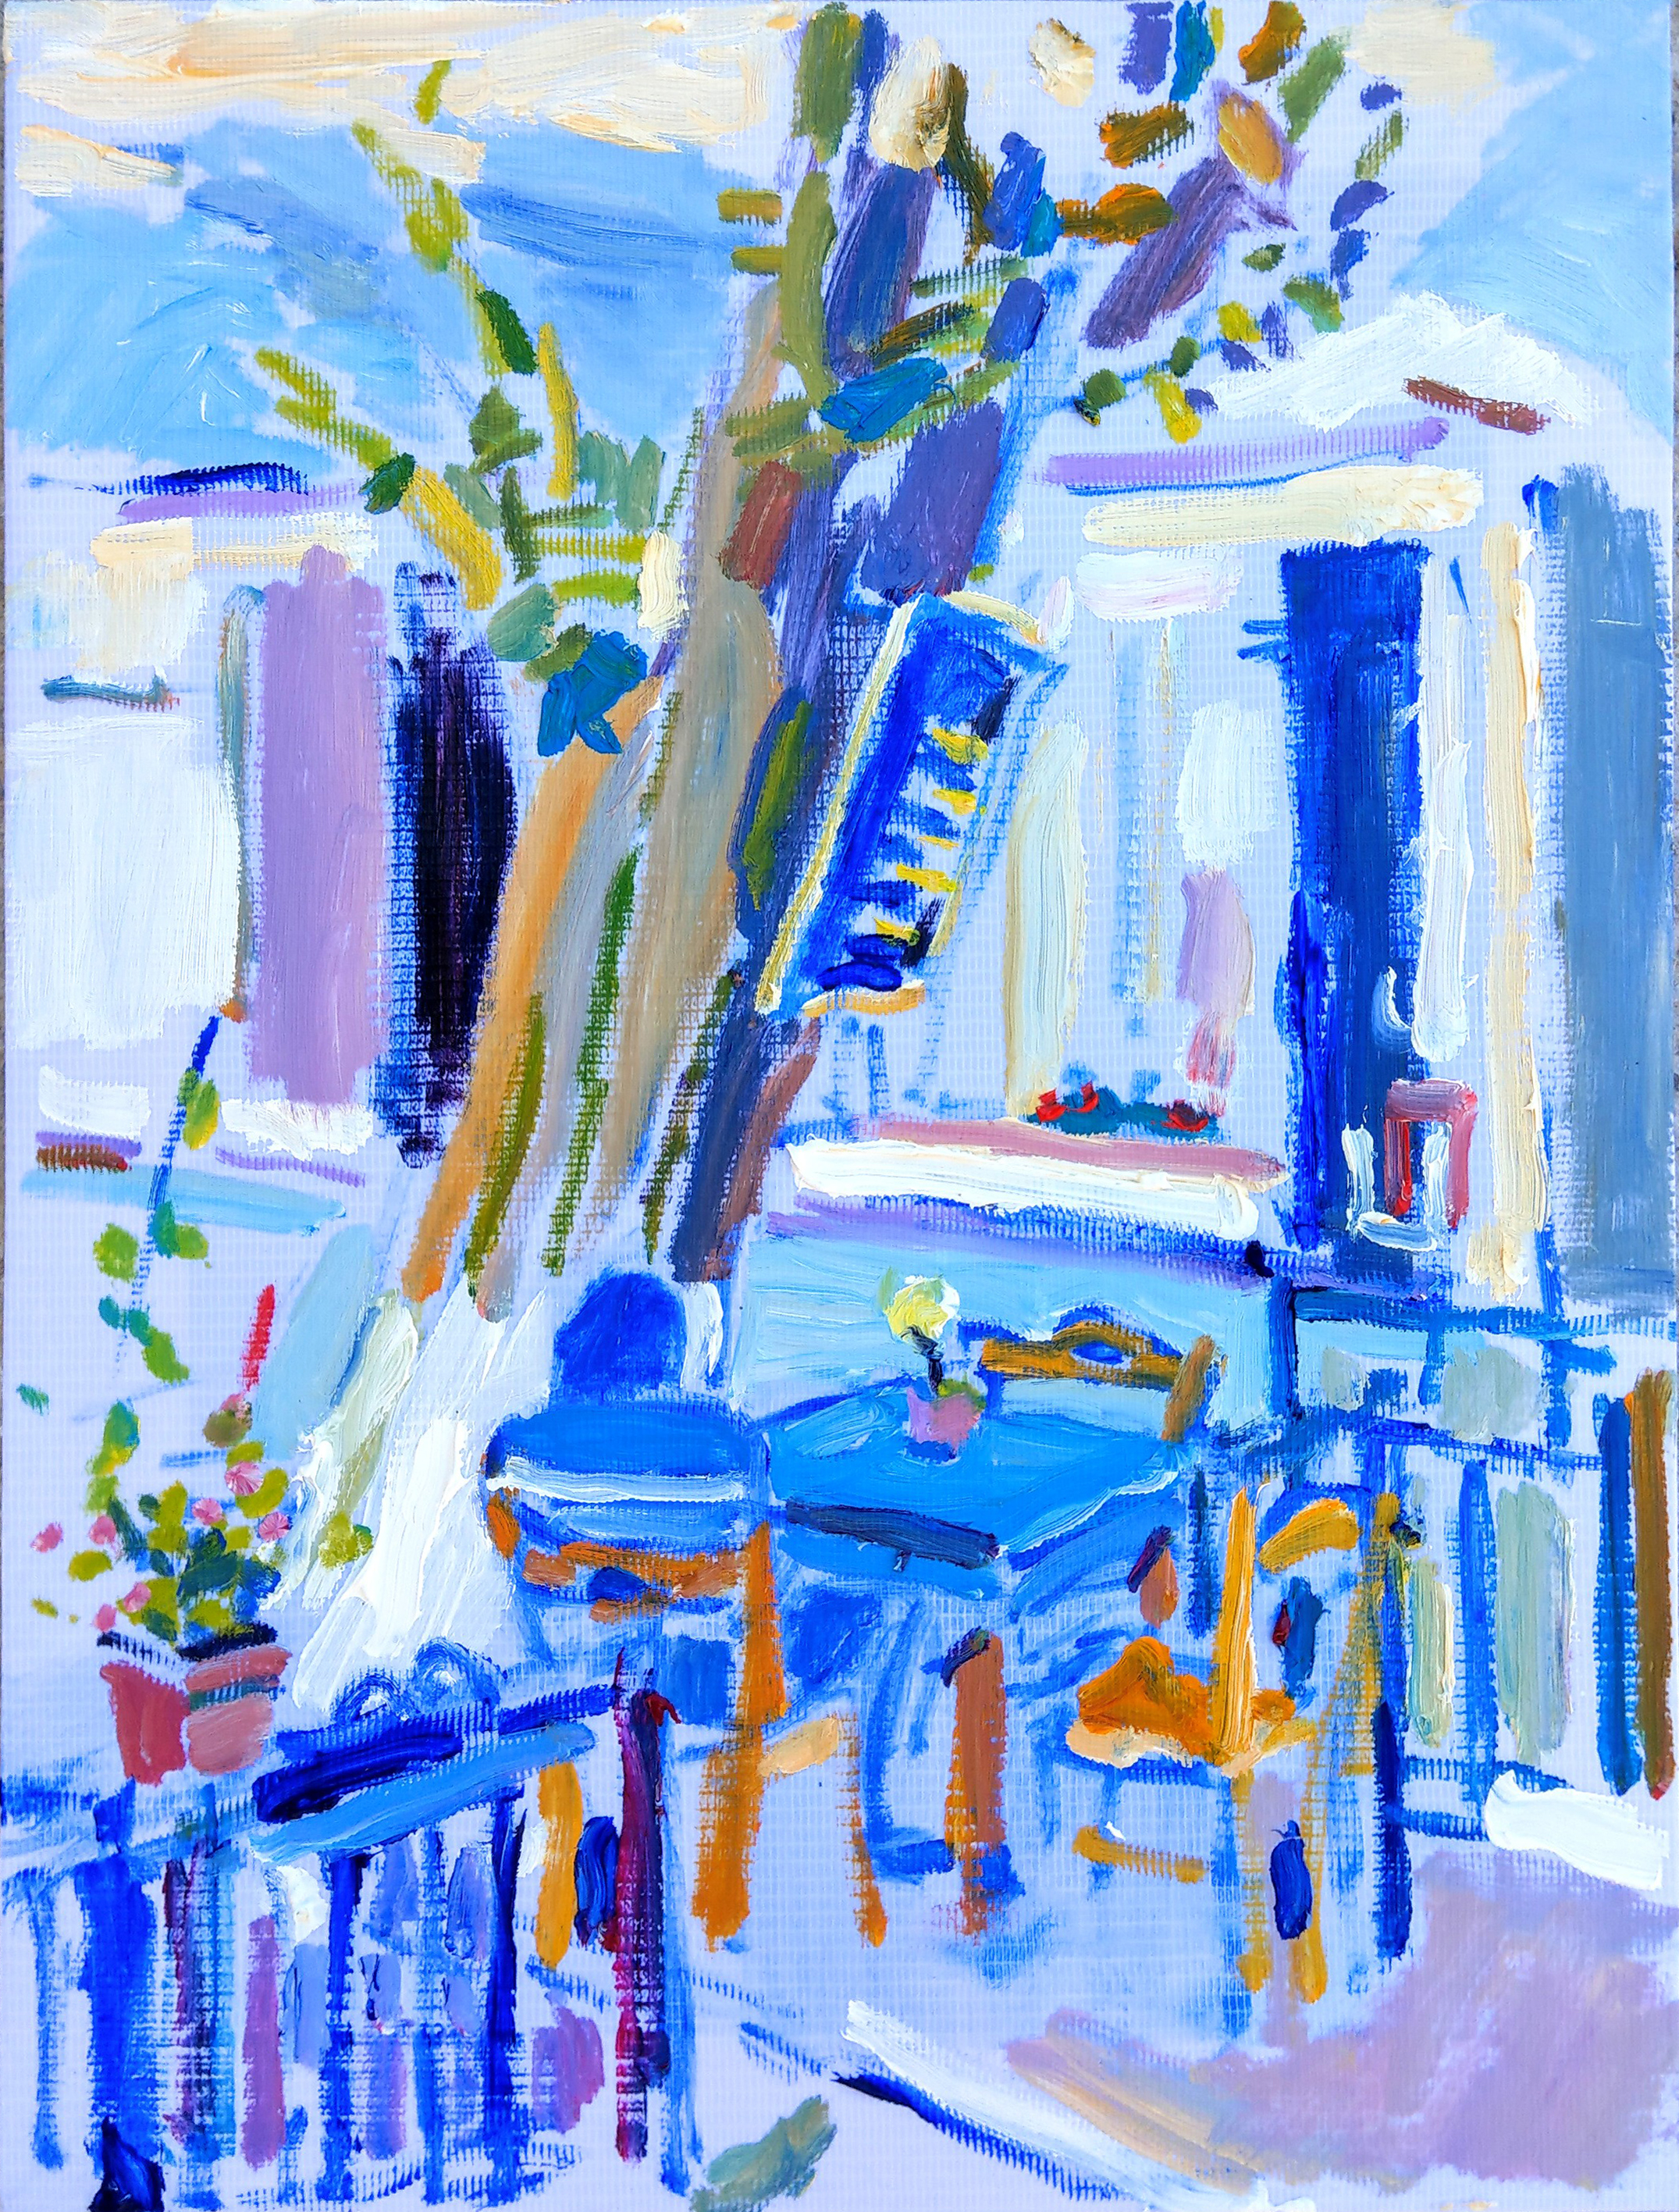 Painting by Ask Oil on Canvass Man Sitting Alone, Yellow on Blue. Καφενείο στο Καρλόβασι 300 x 400 mm 2018  Signed and dated since the photo was taken of course.